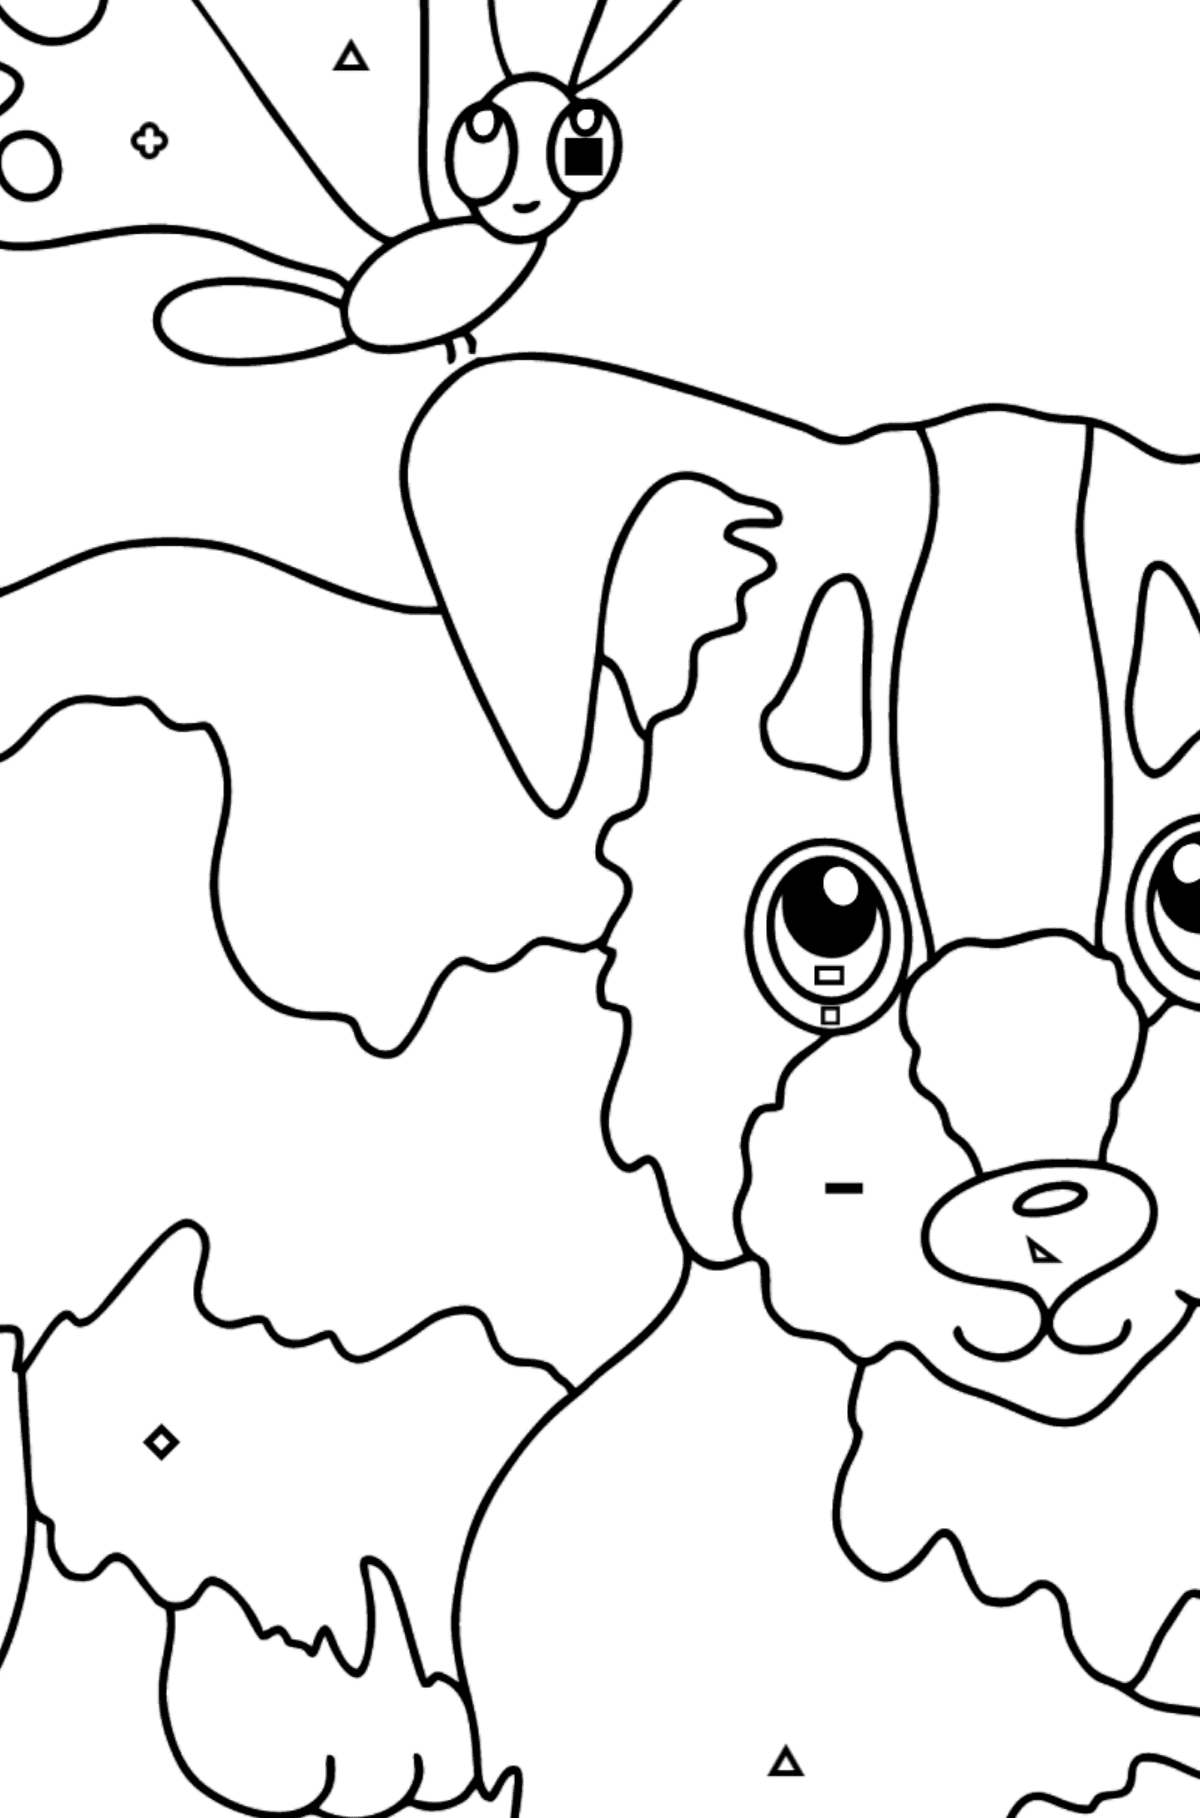 Coloring Page - A Dog is Playing with a Beautiful Butterfly - Coloring by Symbols and Geometric Shapes for Kids